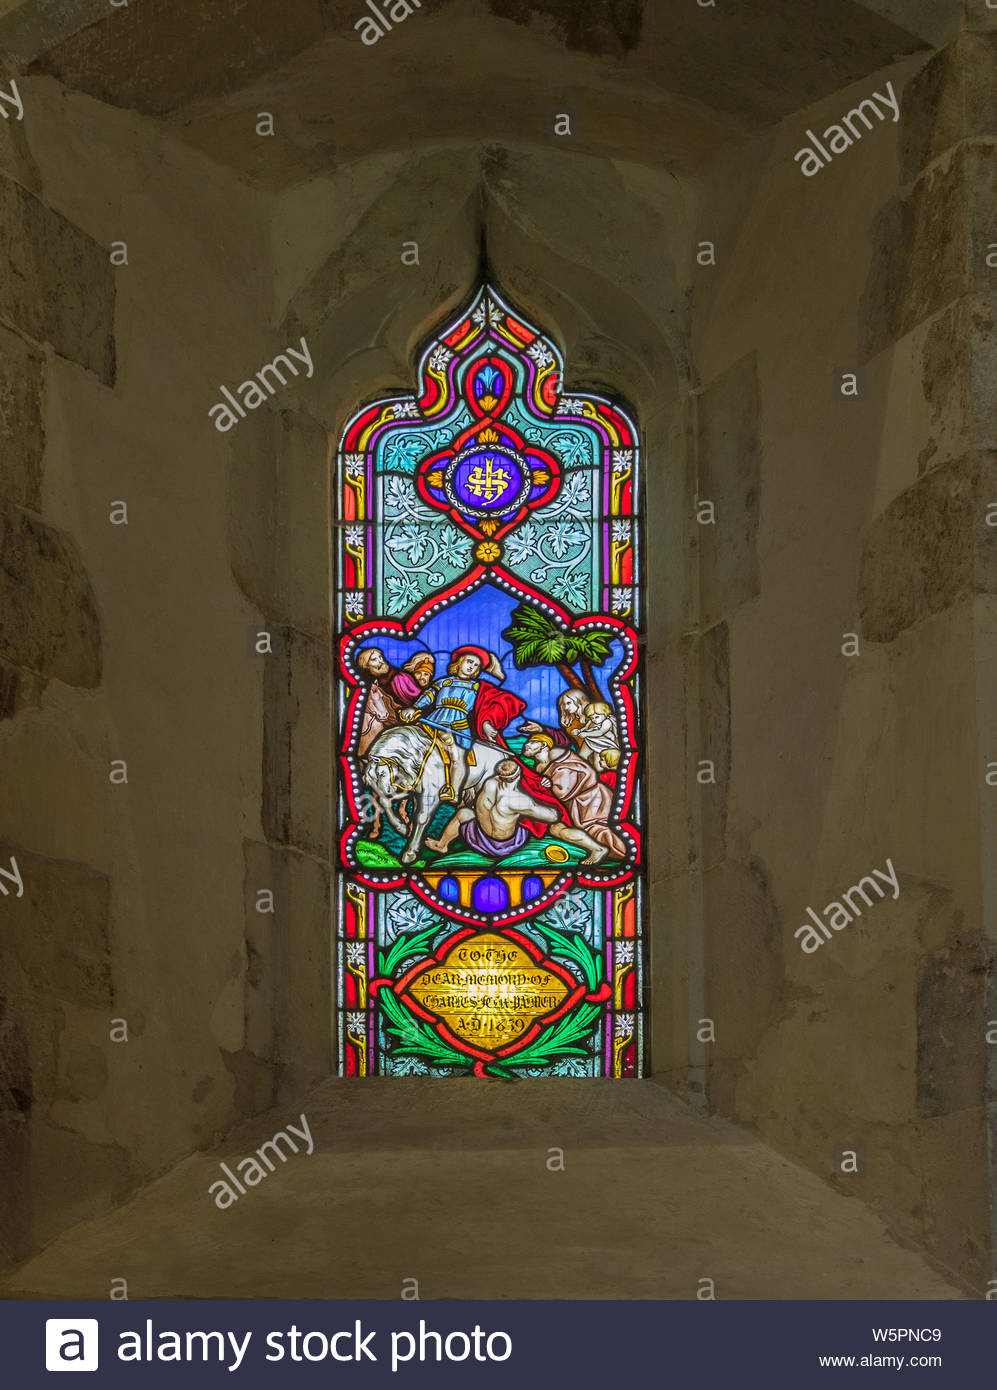 Interior of St. Mary's Church Hartley Wintney, Hampshire UK. Picture shows a stained glass window erected in memory of Charles Felix Palmer who died o Stock Photo